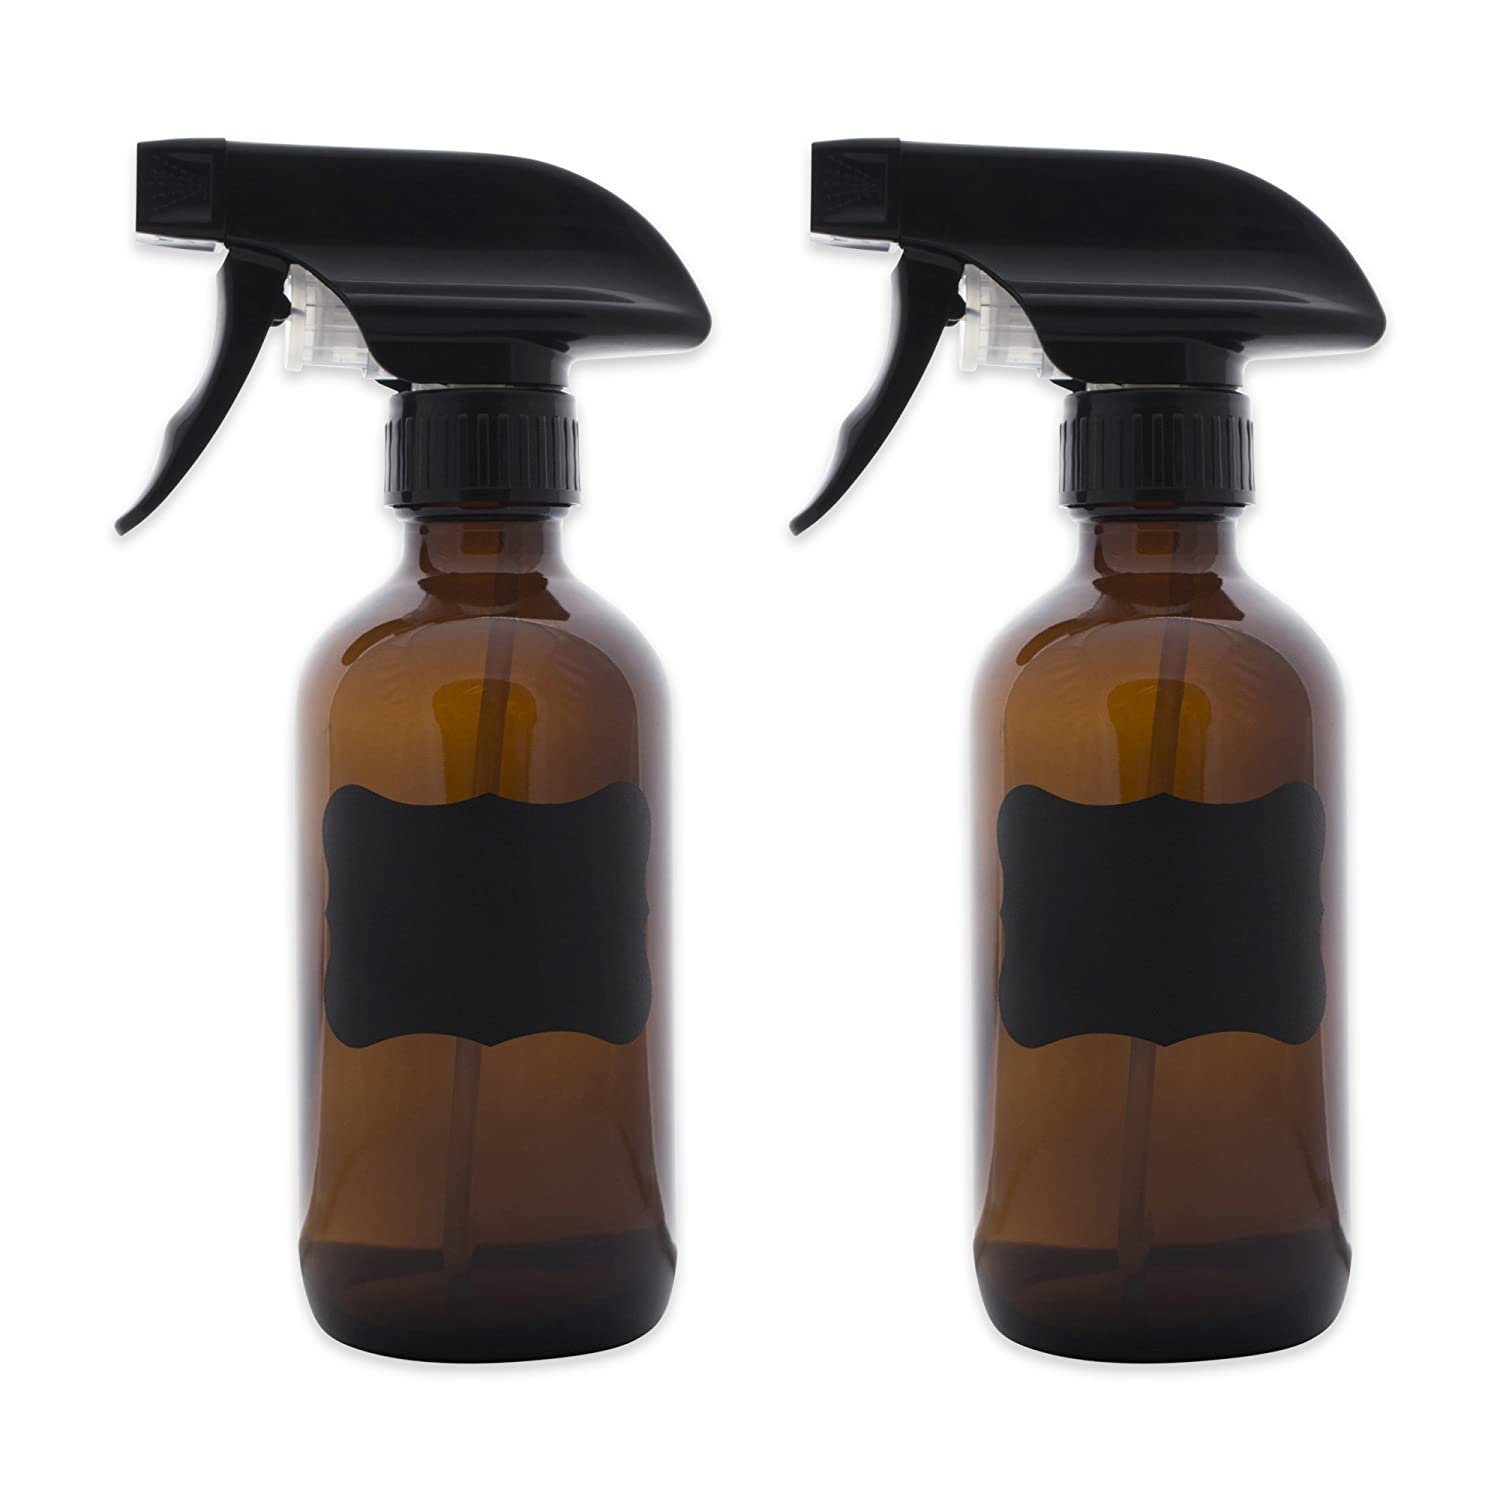 8c54e7f41126 DII Set of 2 Amber Glass Spray Bottles for 8oz of Liquids with Chalkboard  Labels for Cleaners, Essential Oils, Beauty Products, Aromatherapy